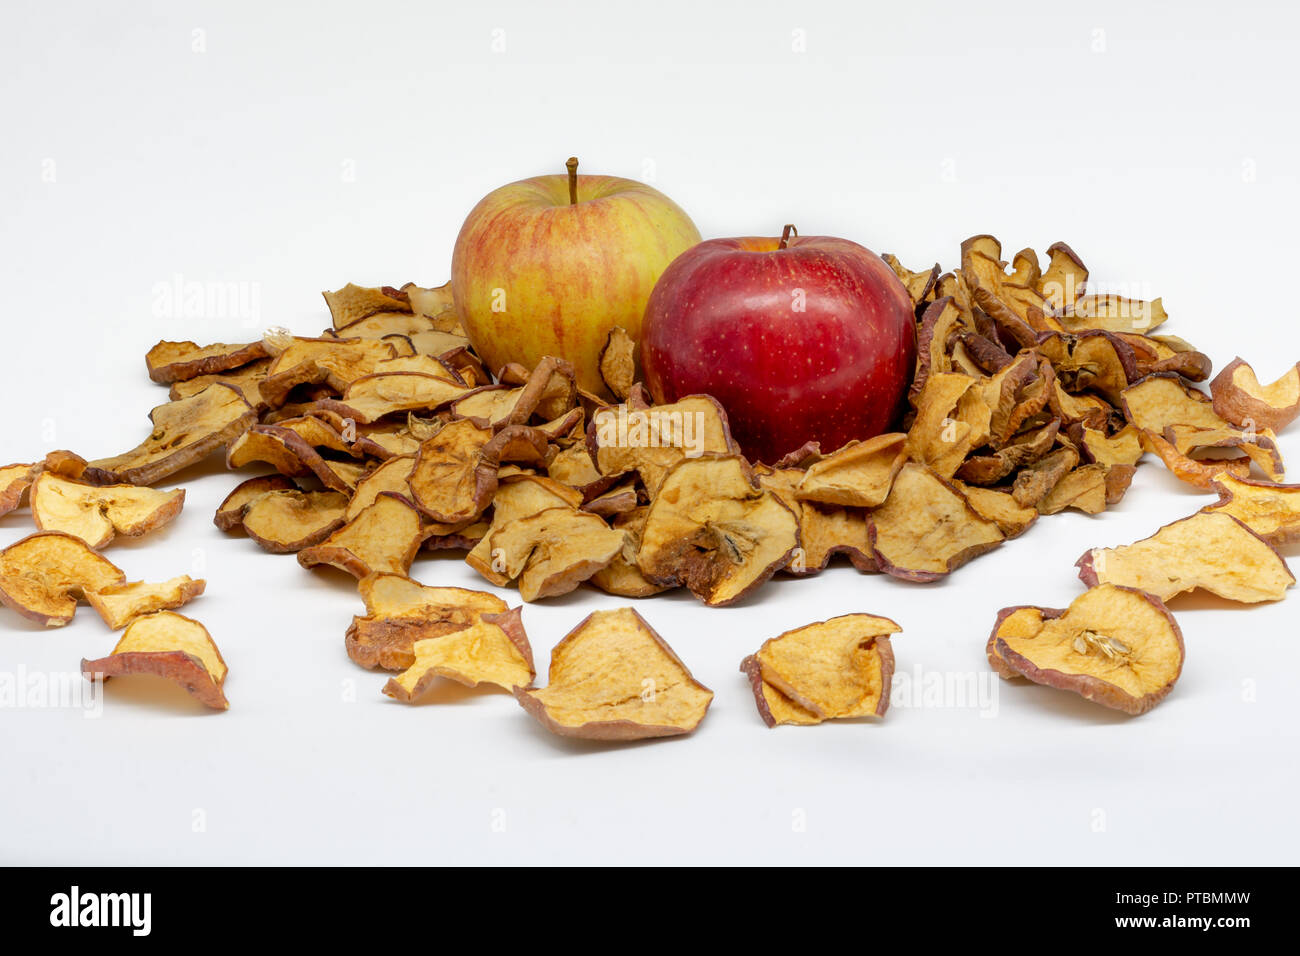 Two apples, one yellow and the other red, surrounded by many slices of dehydrated apple slices with a clean and light white background - Stock Image